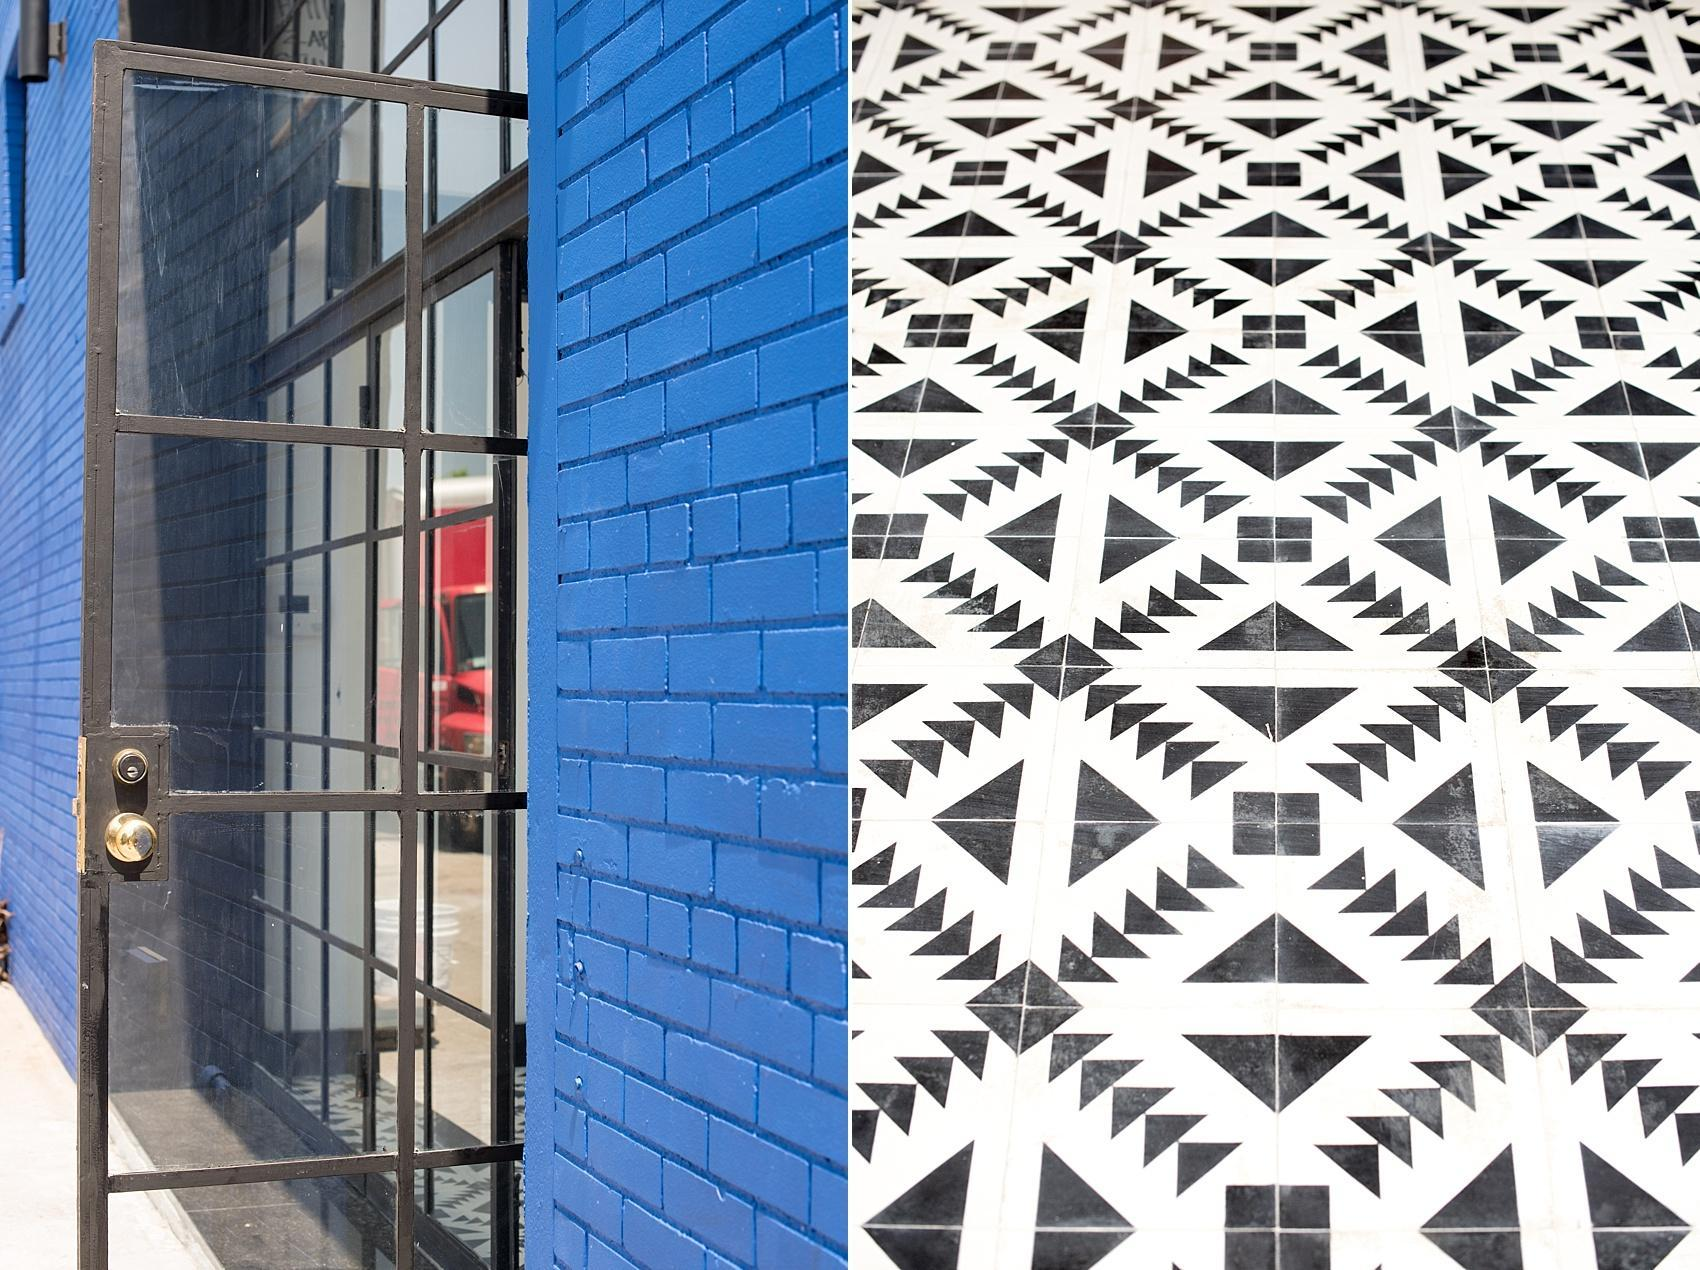 Mikkel Paige Photography, NYC wedding photographer, captures Brooklyn's event space, Dobbin St. with inviting cobalt blue exterior brick wall and black and white moroccan tile entrance.